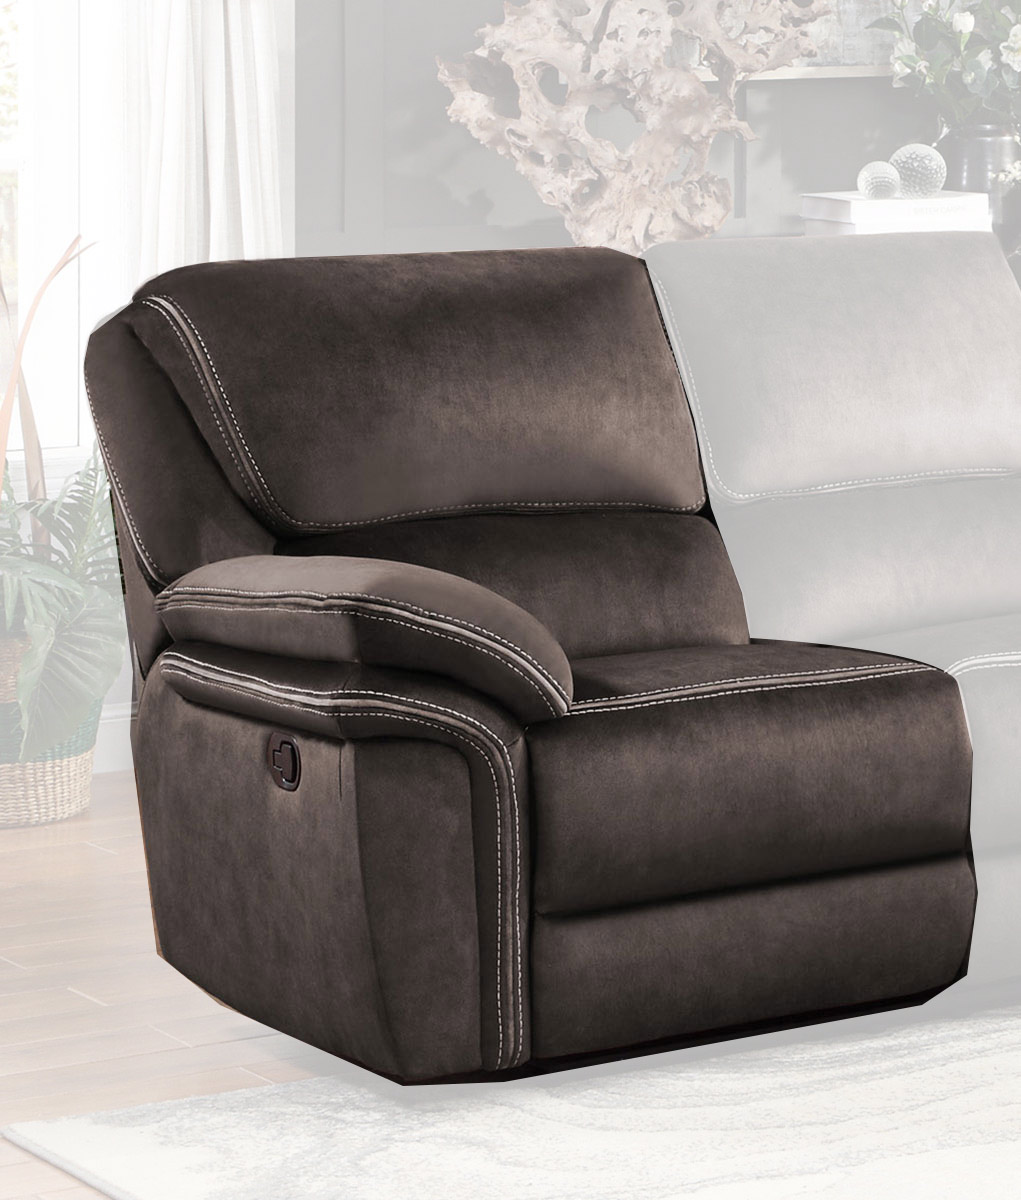 Homelegance Bronagh Left Side Reclining Love Seat - Chocolate